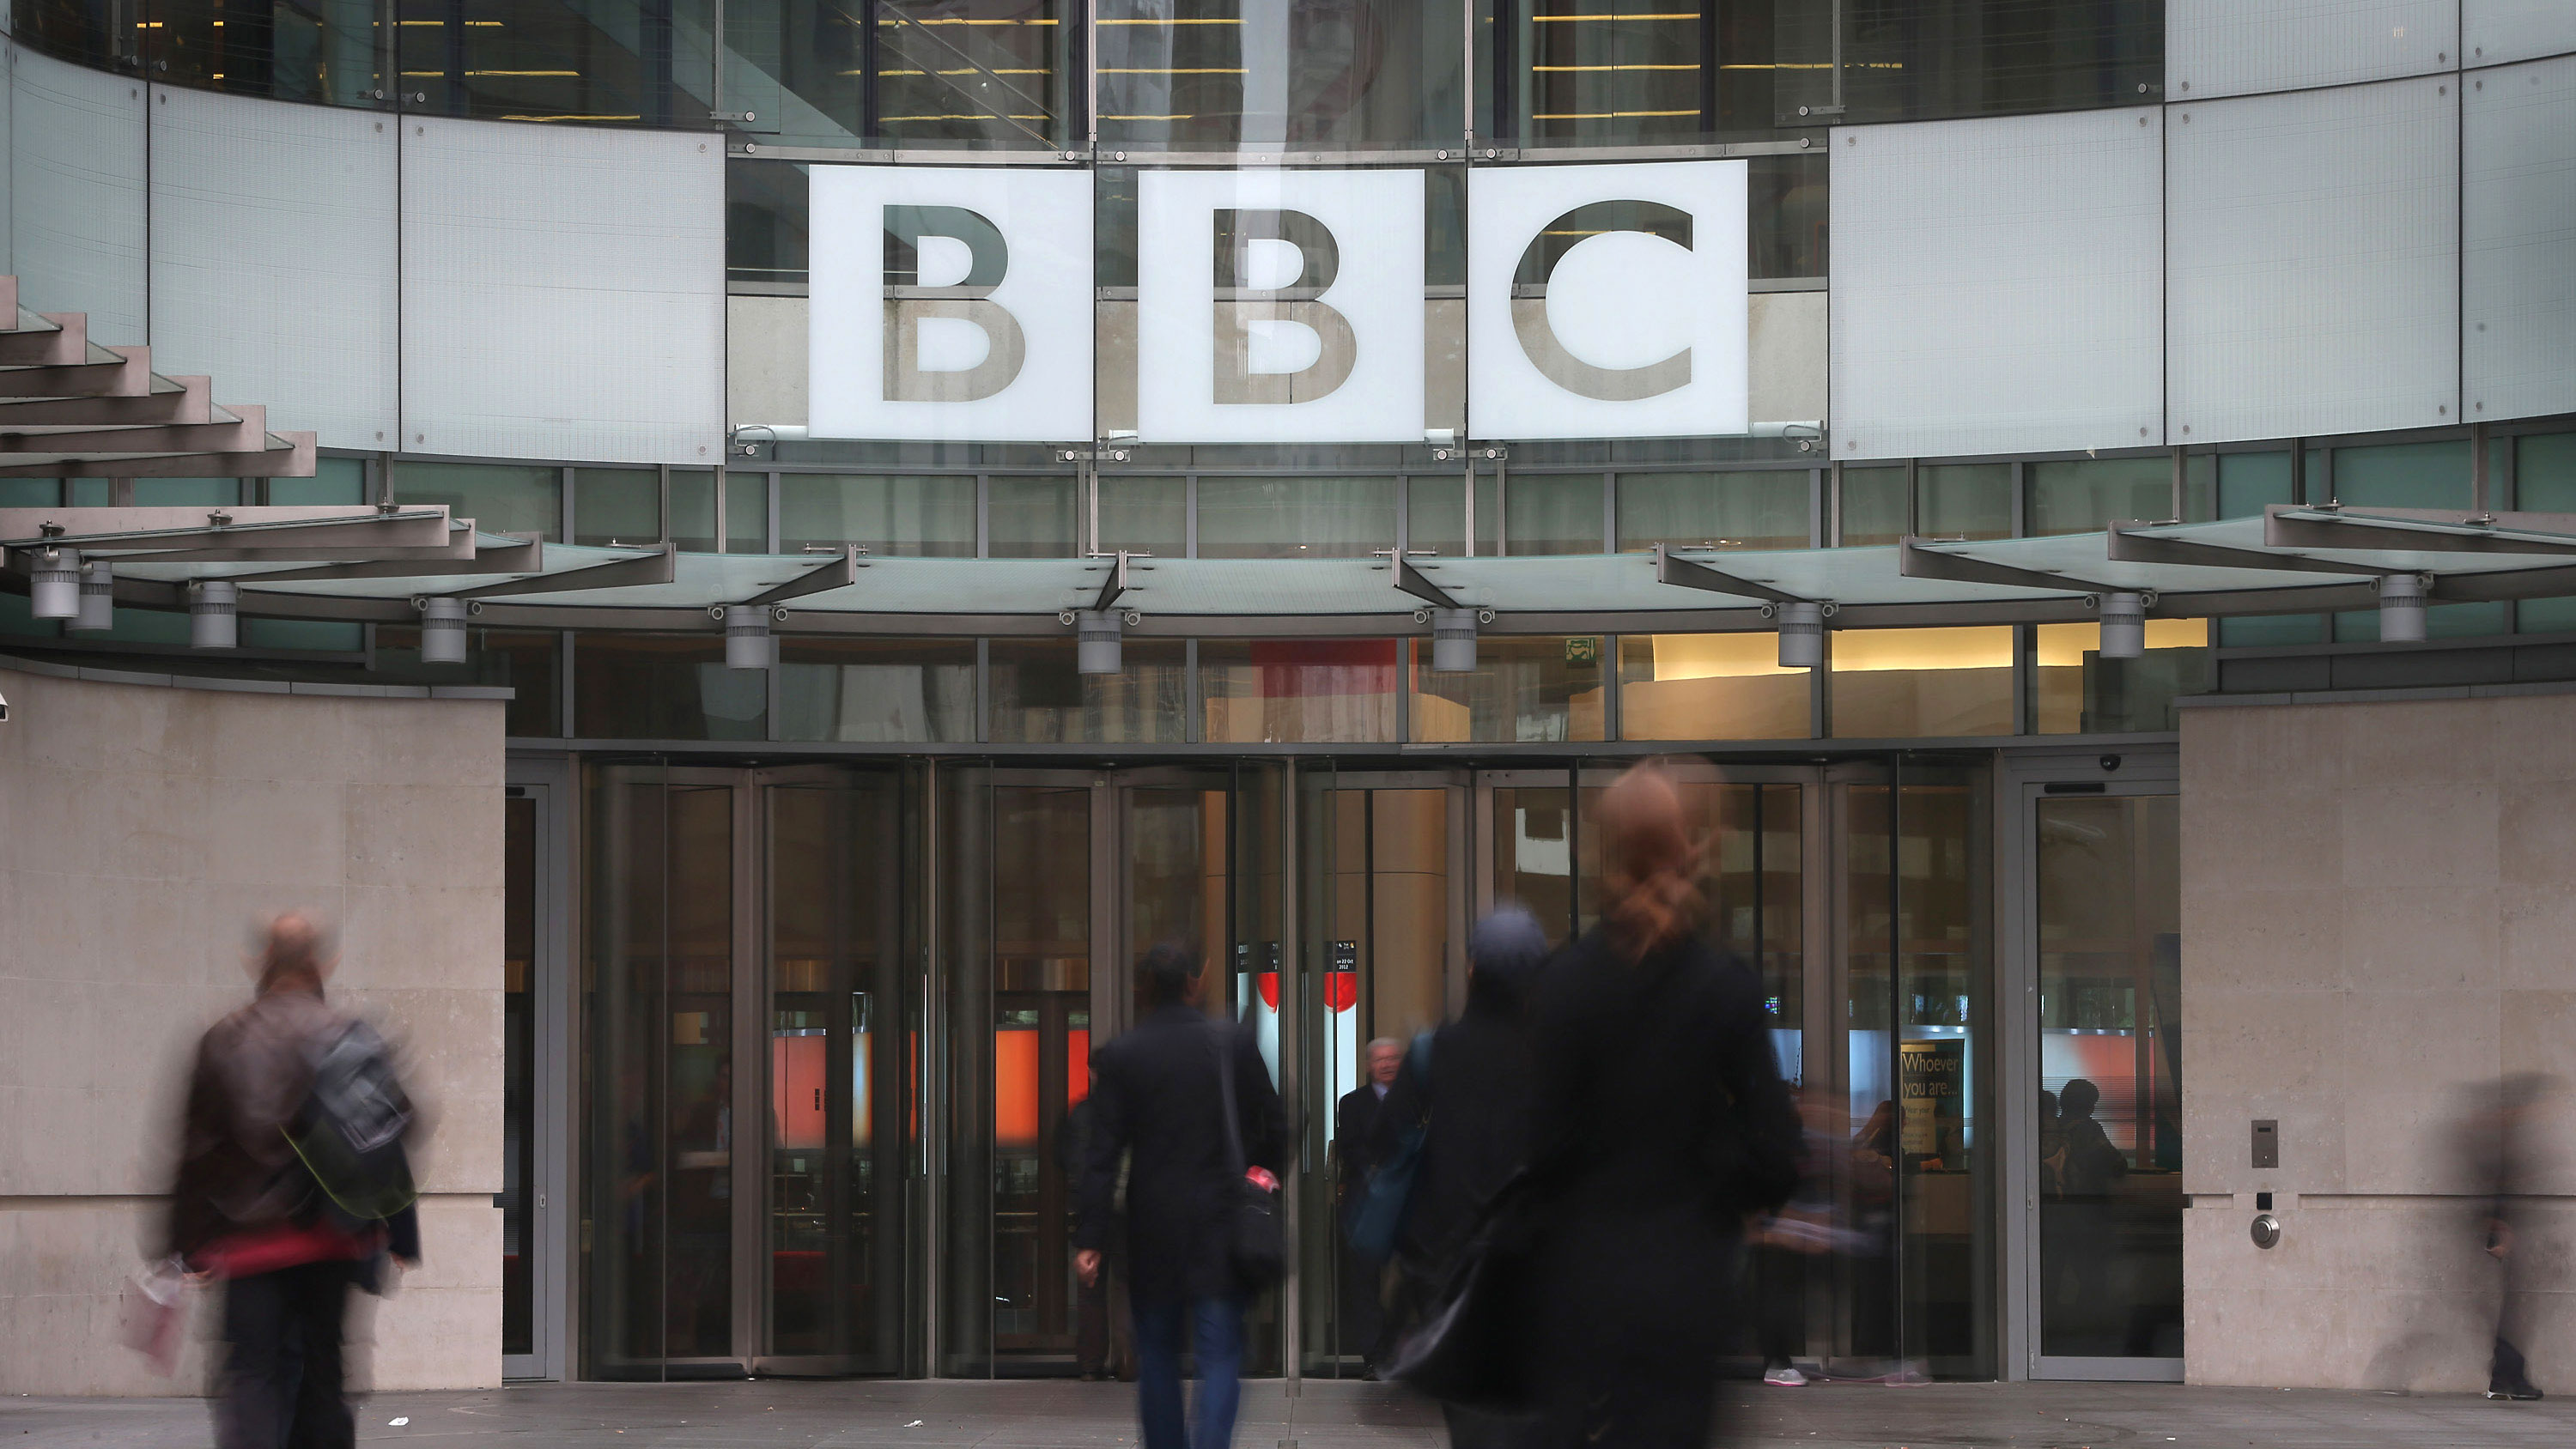 The BBC is nearly 100 years old. Will it survive the next decade?